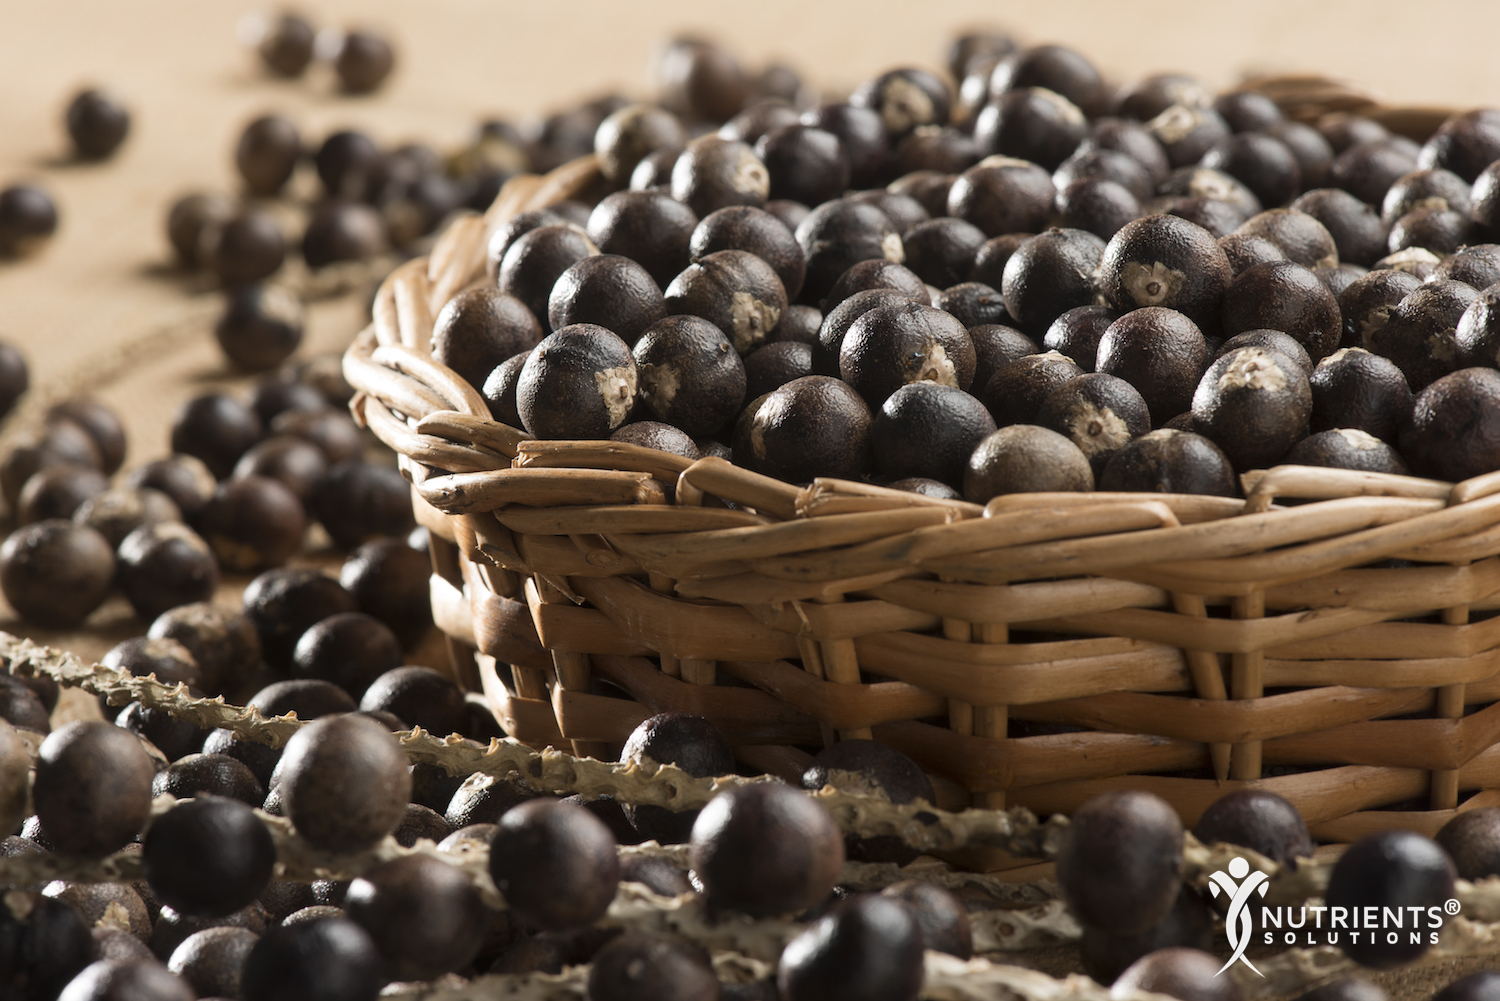 6 Reasons Acai Berries are a Superfood